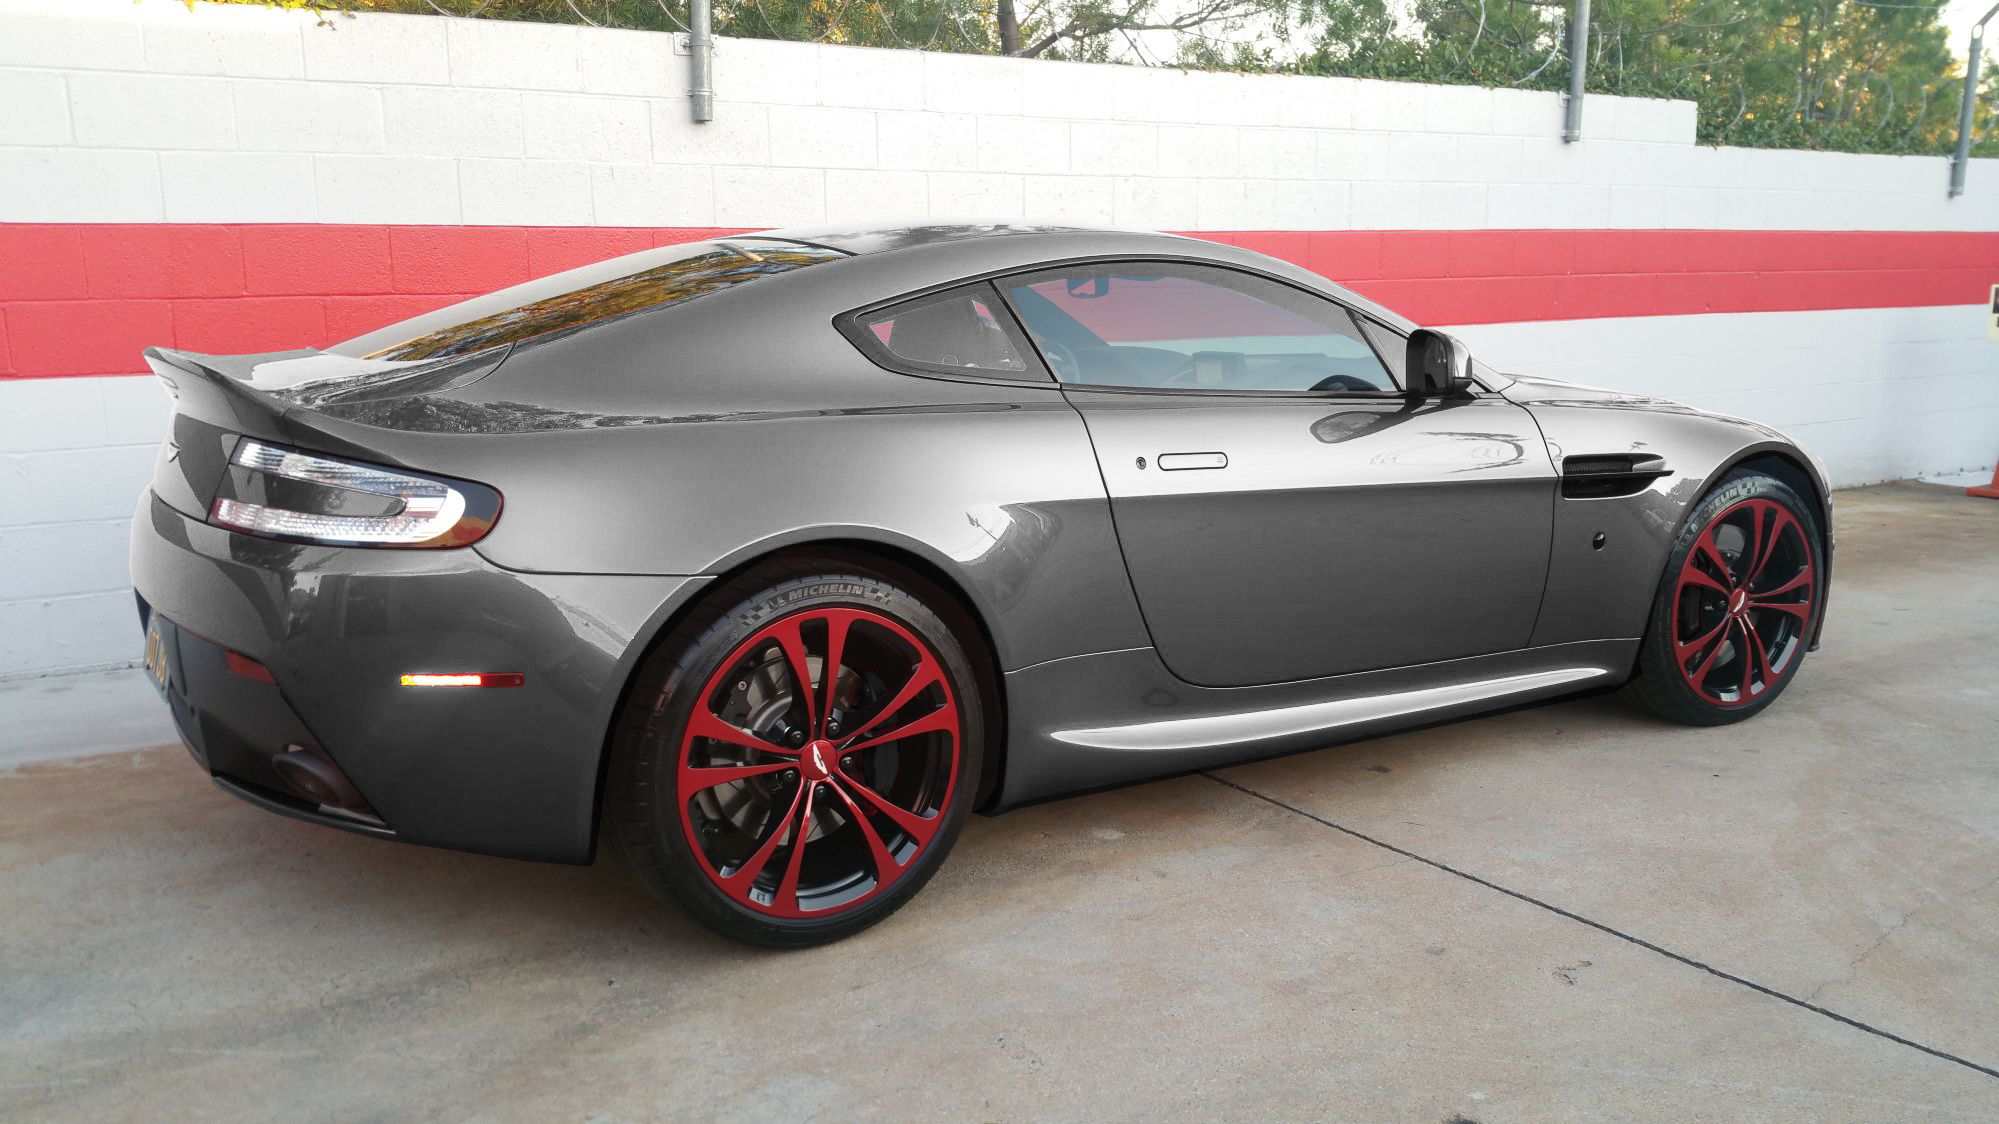 2016 Aston Martin Db9 Gt Coupe C 273 furthermore 26 Aston Martin Dbs White Wallpaper 7 in addition  moreover Aston Martin Db4 Vantage Gt V Wallpapers in addition 05. on aston martin vantage silver